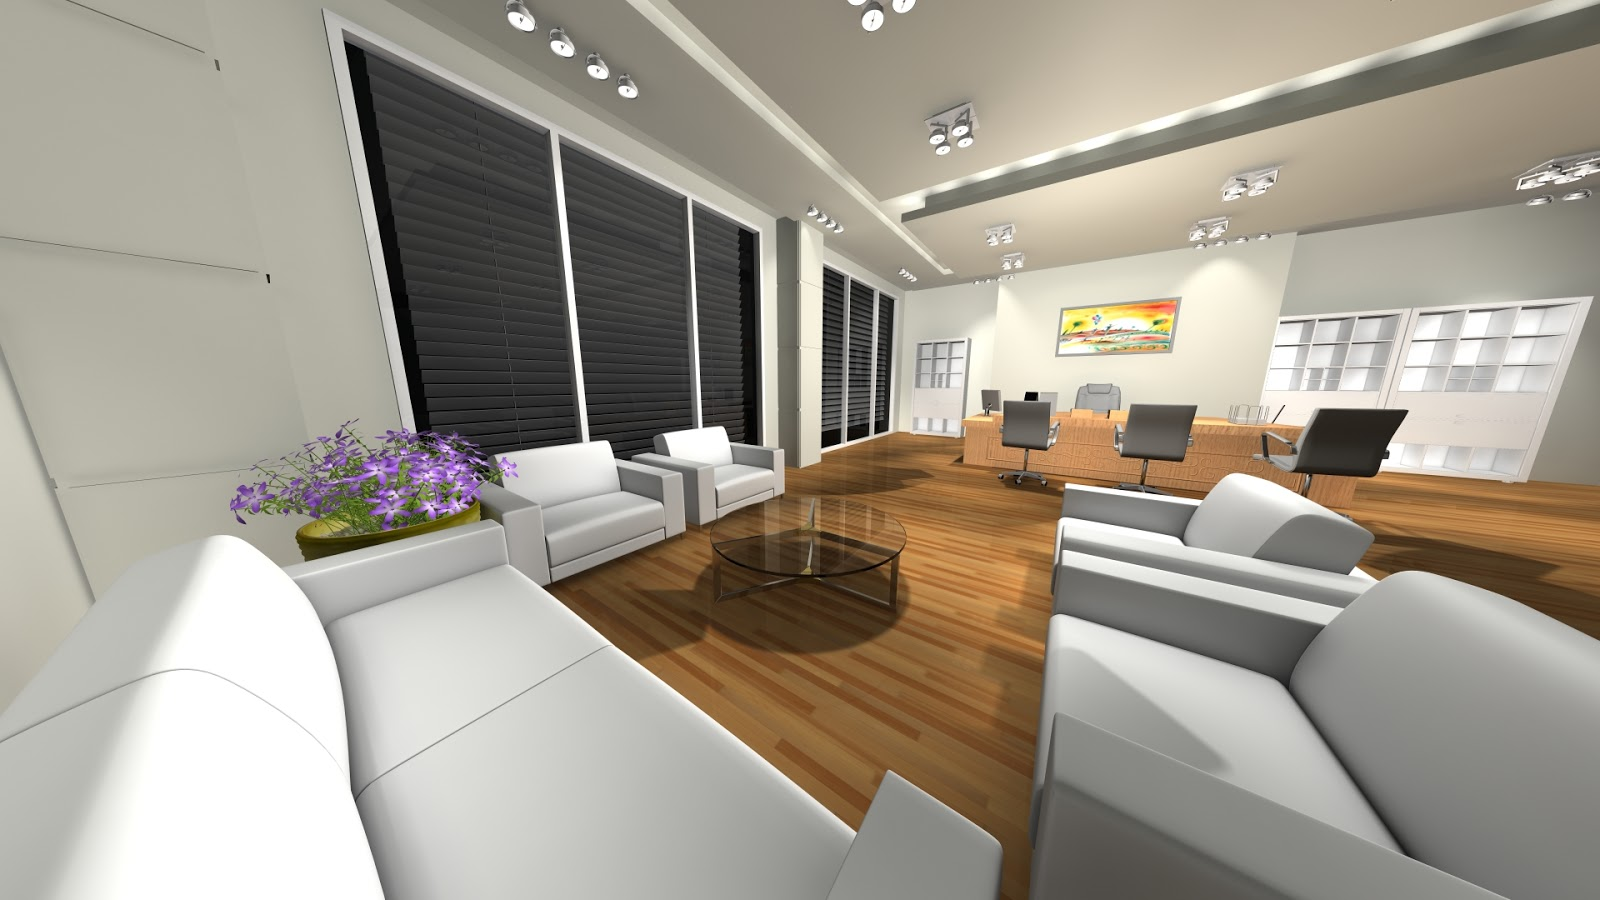 Sajid designer office room 3d interior design 3ds max for Decoration 3ds max